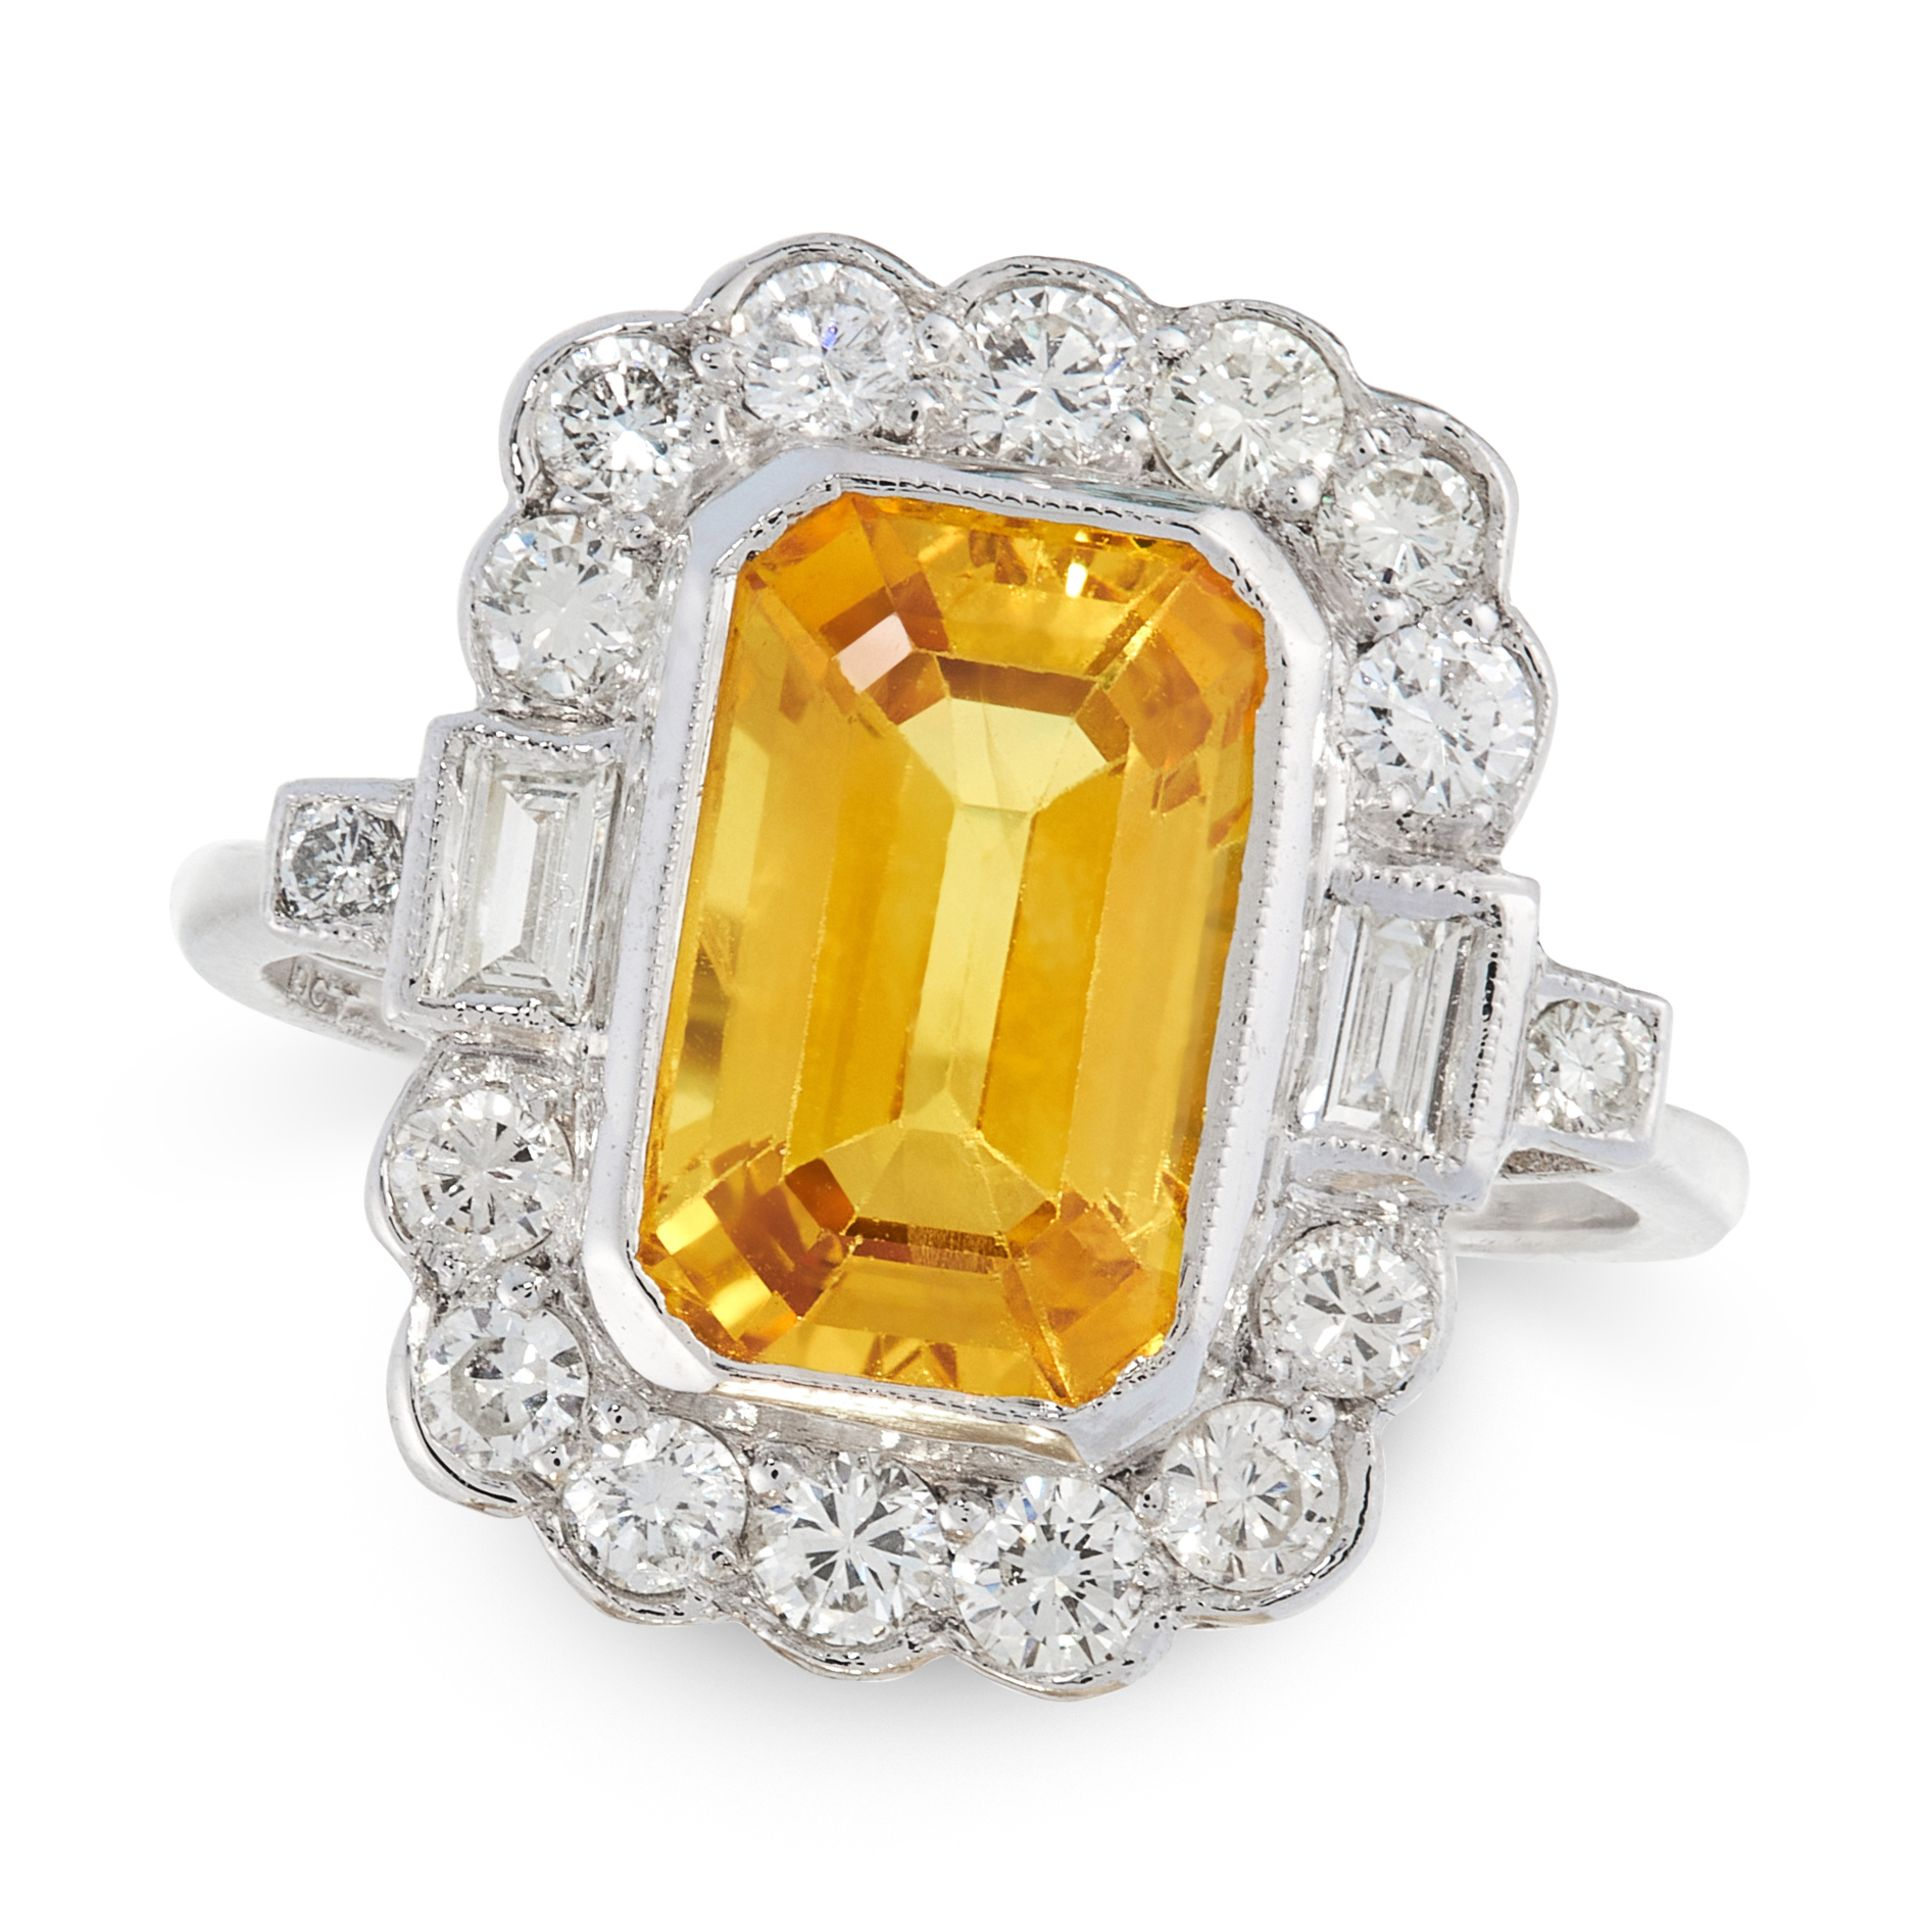 A VINTAGE YELLOW SAPPHIRE AND DIAMOND DRESS RING in 18ct white gold, set with an emerald cut